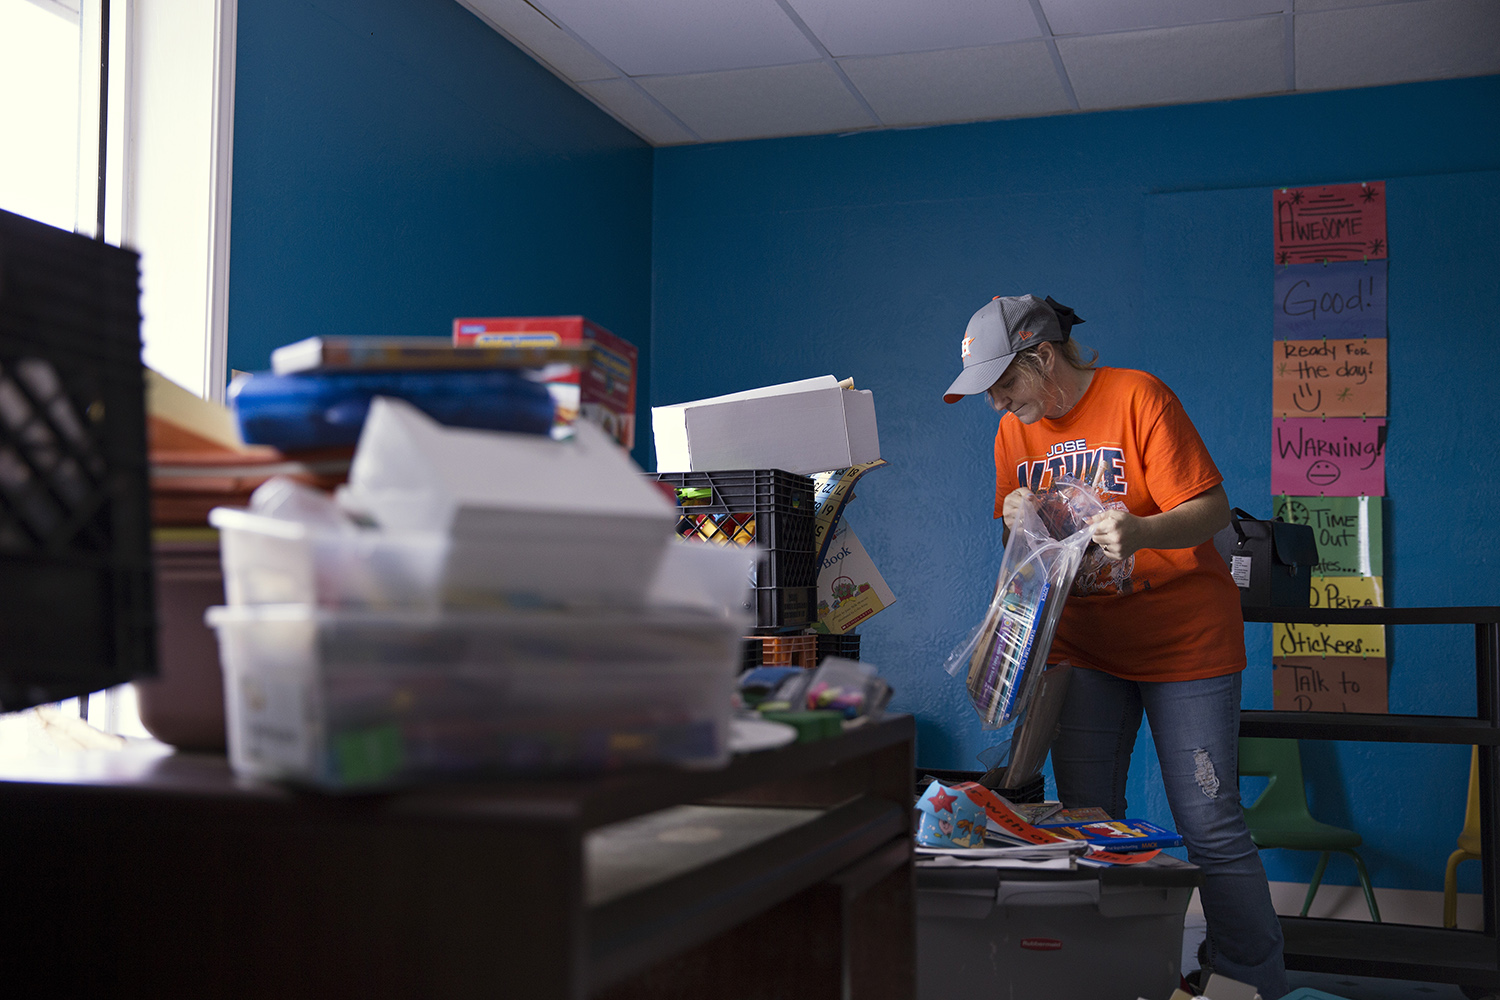 Anna Lingo sorts through salvaged items from the James Hope Center after it was flooded during Hurricane Harvey.